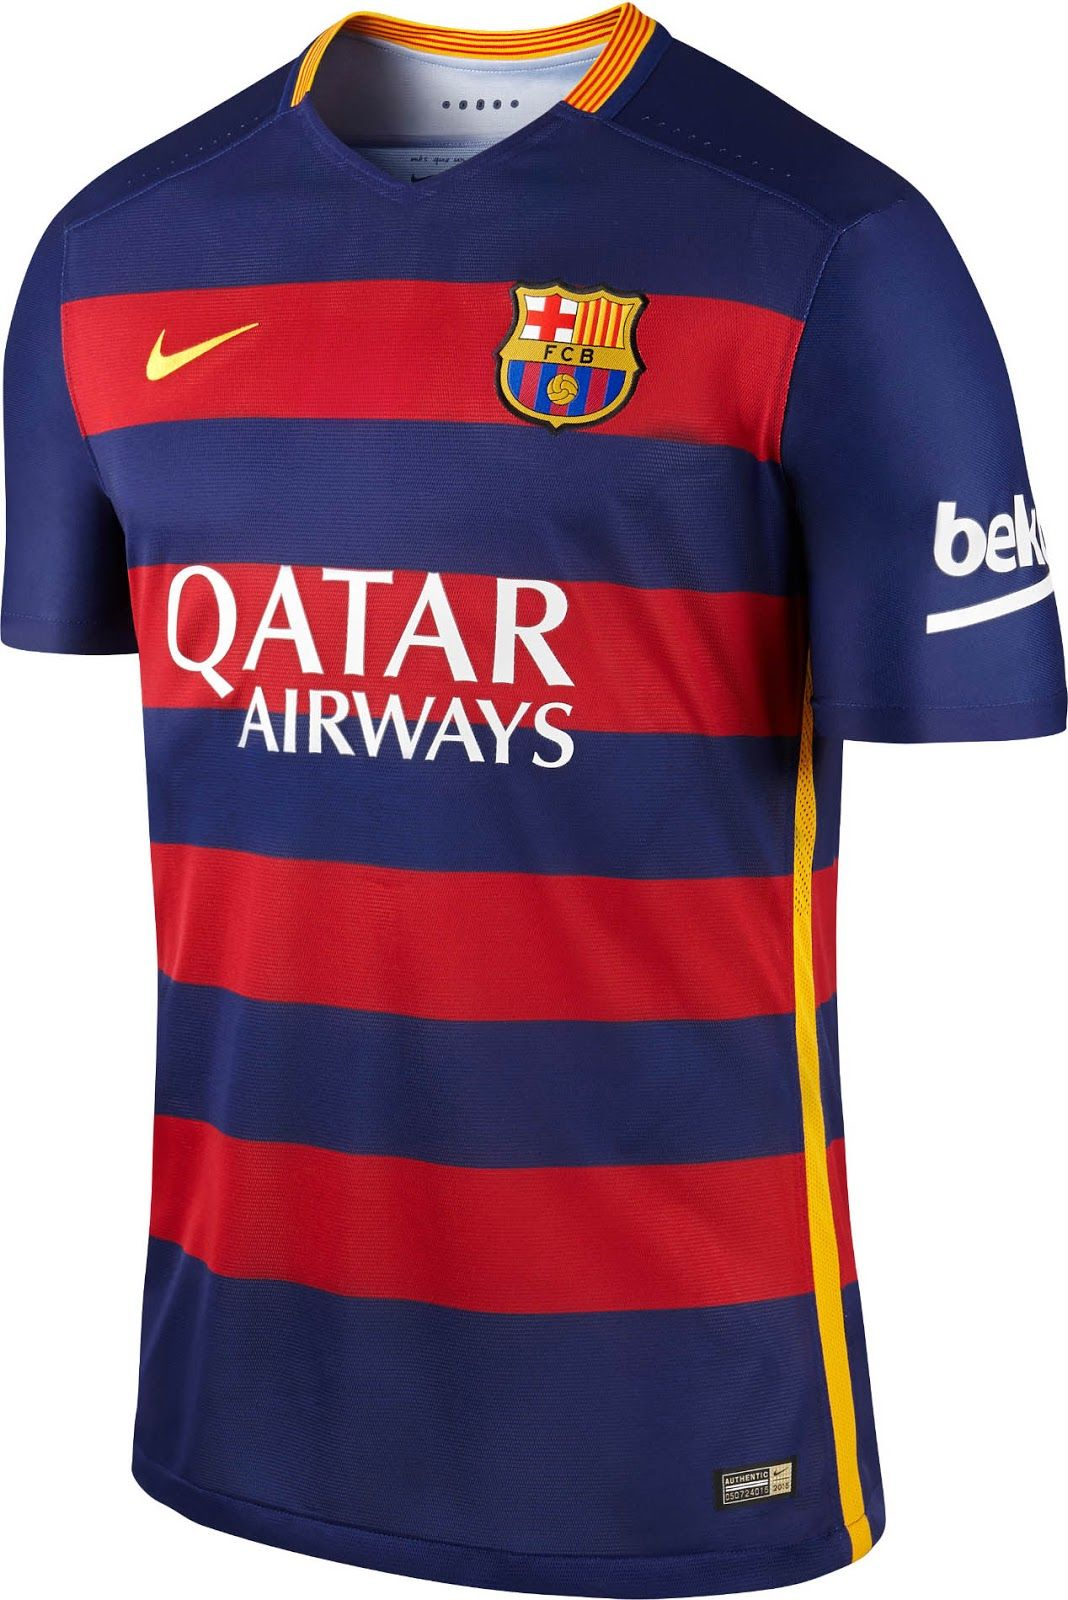 barca jersey 2015-16 - Google Search